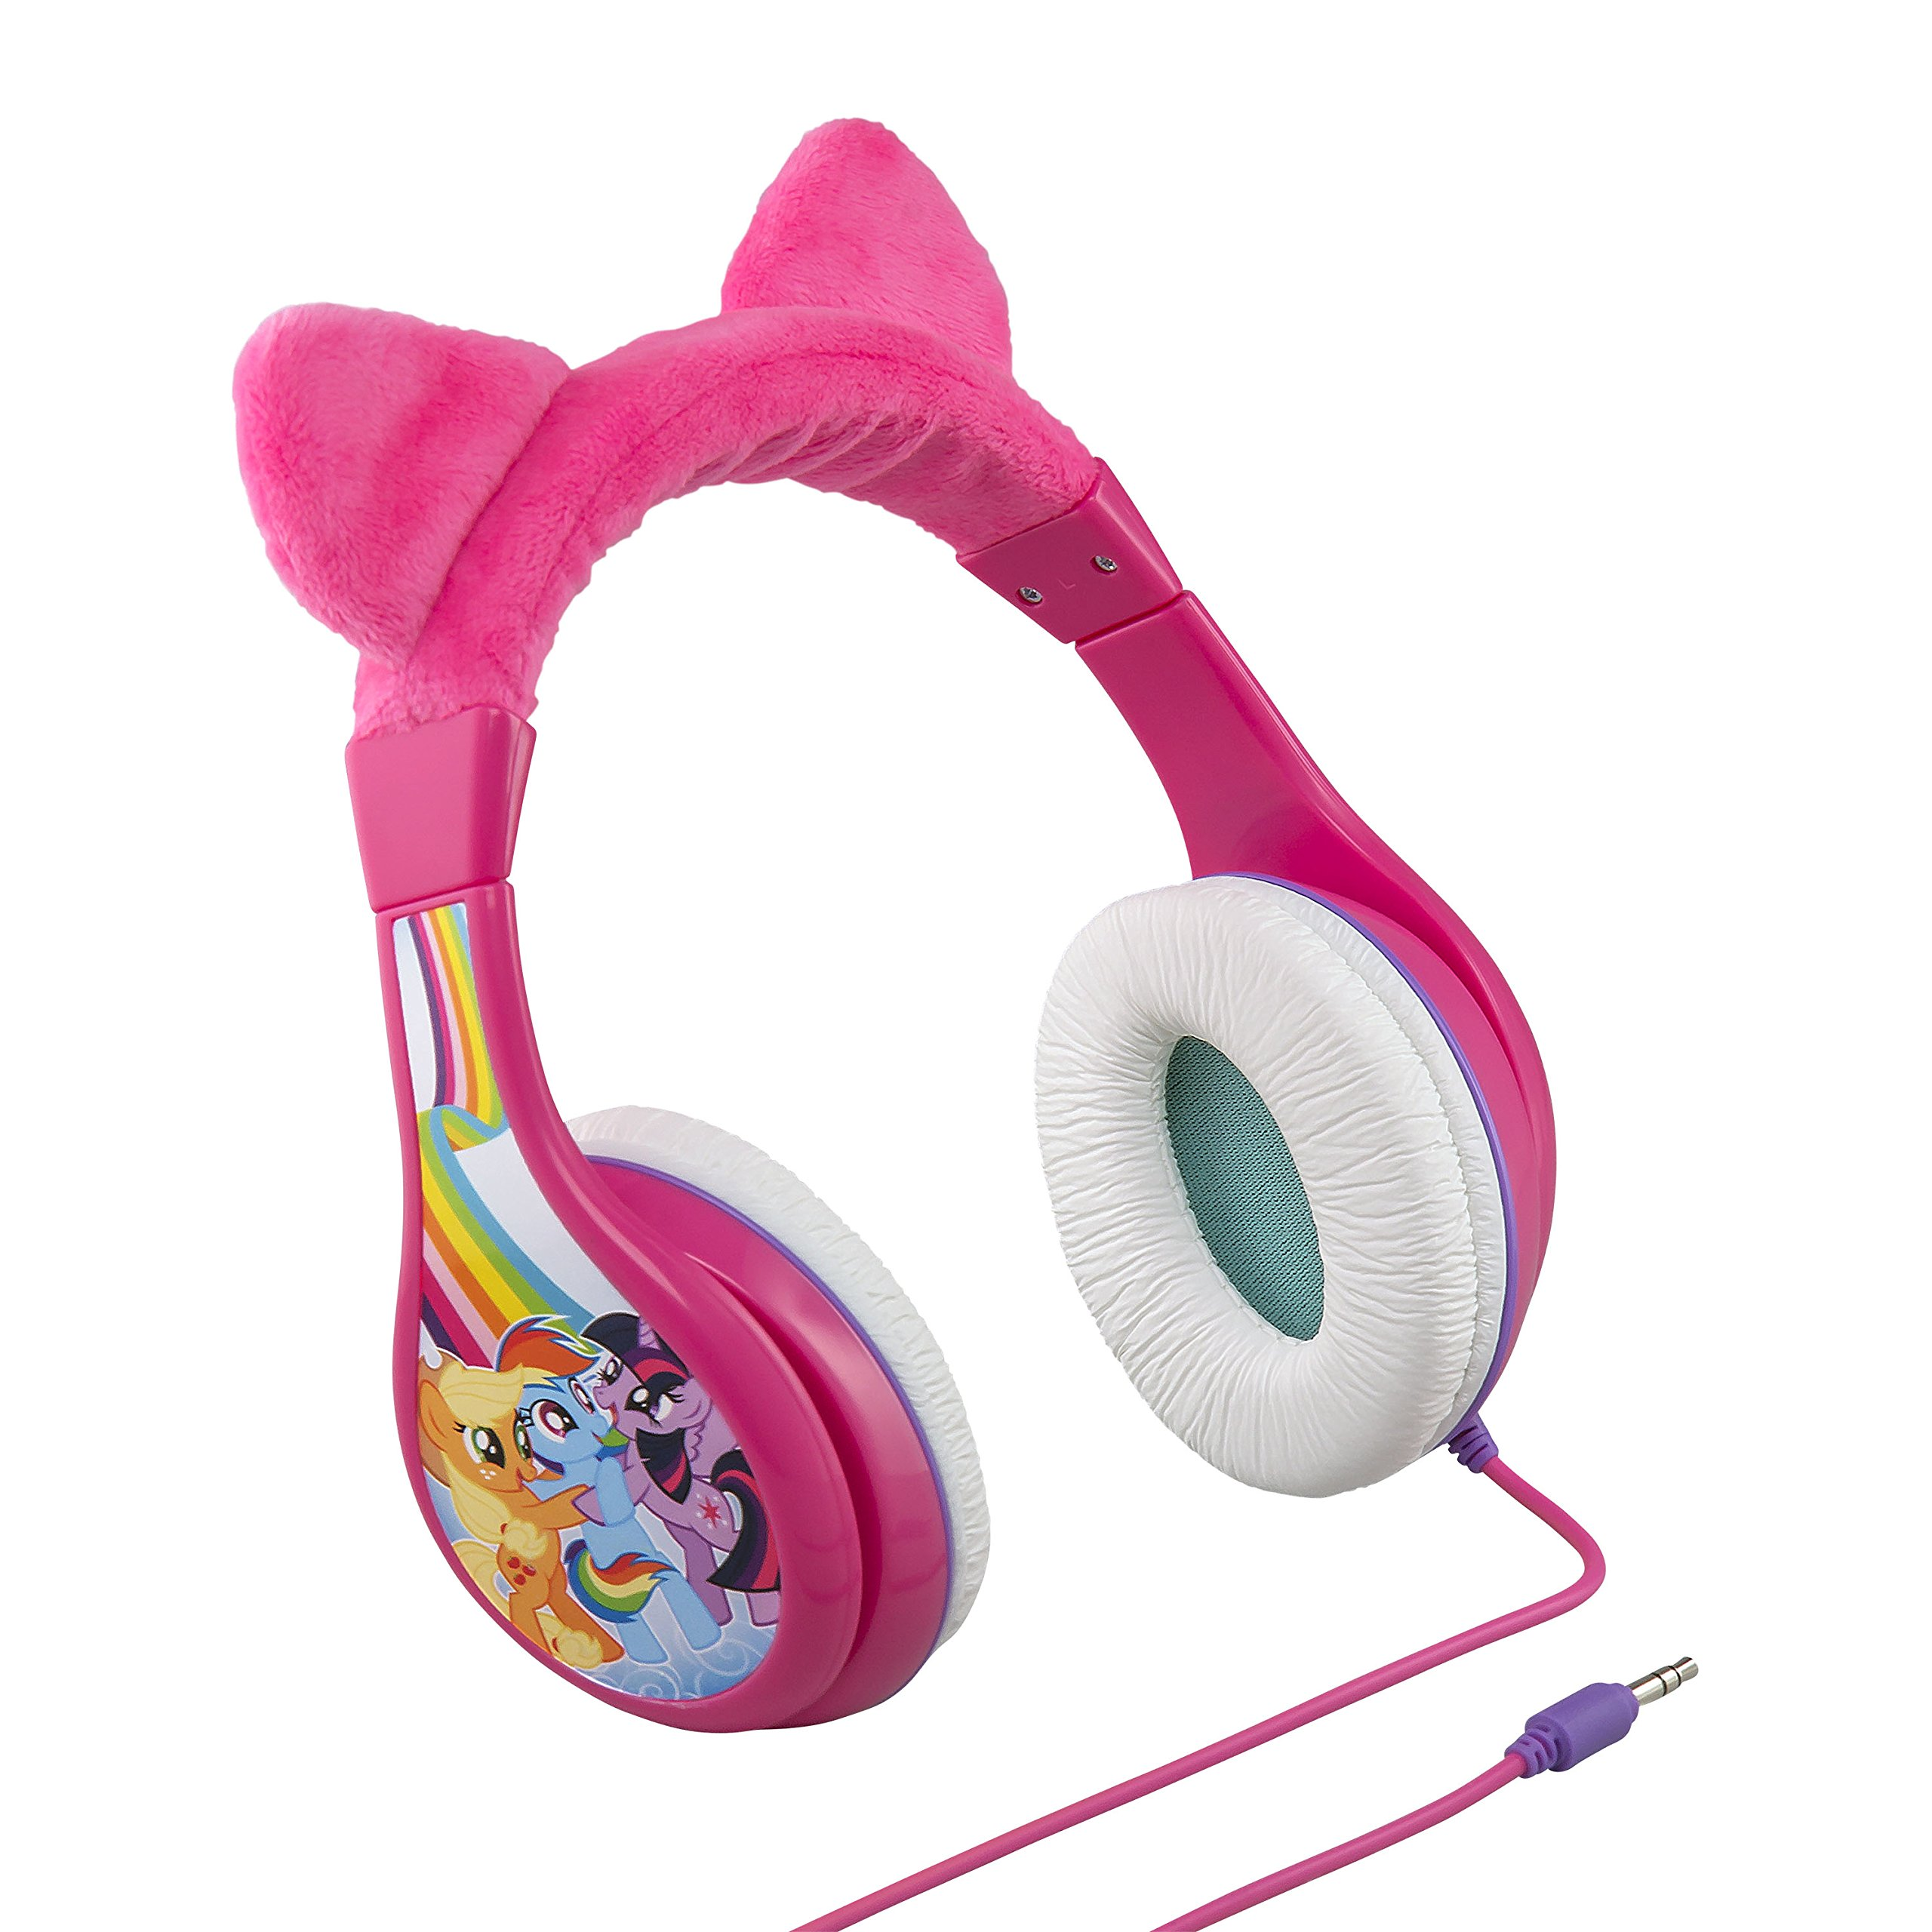 My Little Pony the Movie Youth Headphones for Kids with Volume Limiting Parental Sound Control to Protect Young Ears